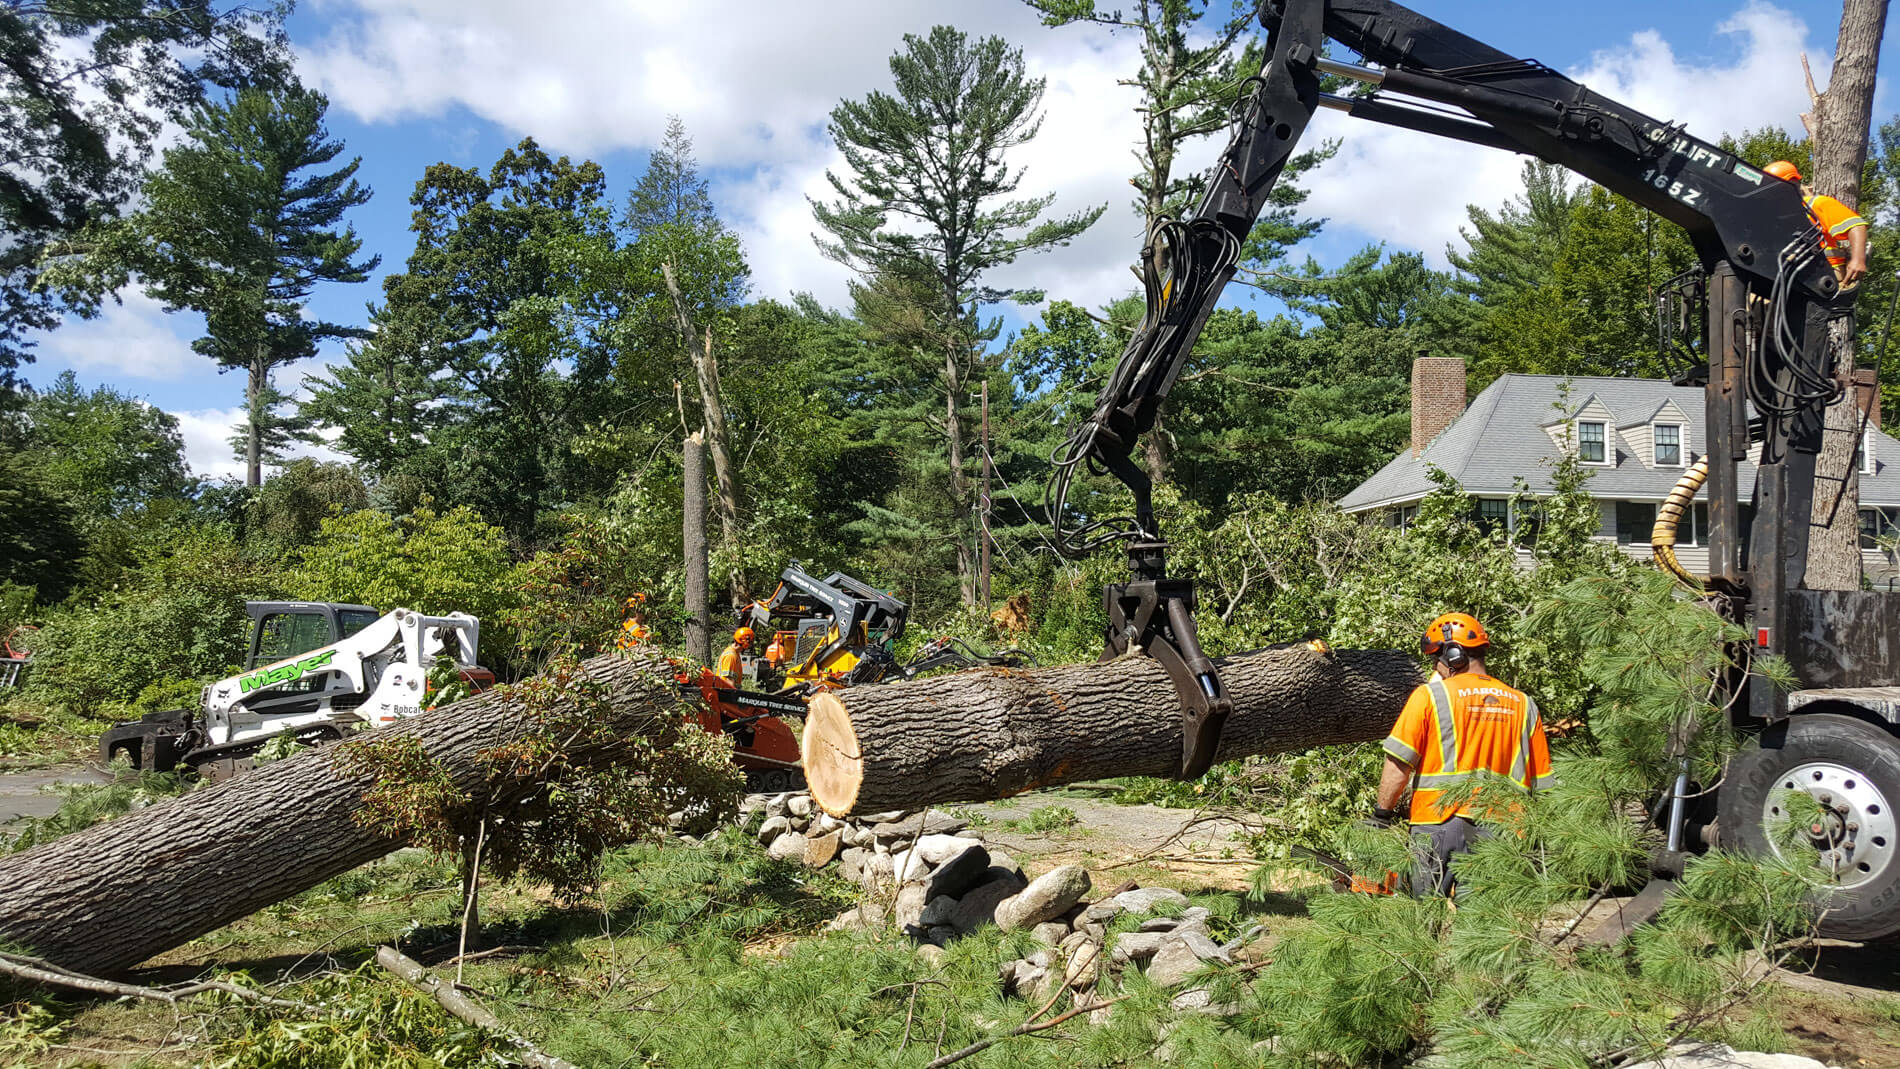 Commercial Tree Services-Riviera Beach Tree Trimming and Tree Removal Services-We Offer Tree Trimming Services, Tree Removal, Tree Pruning, Tree Cutting, Residential and Commercial Tree Trimming Services, Storm Damage, Emergency Tree Removal, Land Clearing, Tree Companies, Tree Care Service, Stump Grinding, and we're the Best Tree Trimming Company Near You Guaranteed!